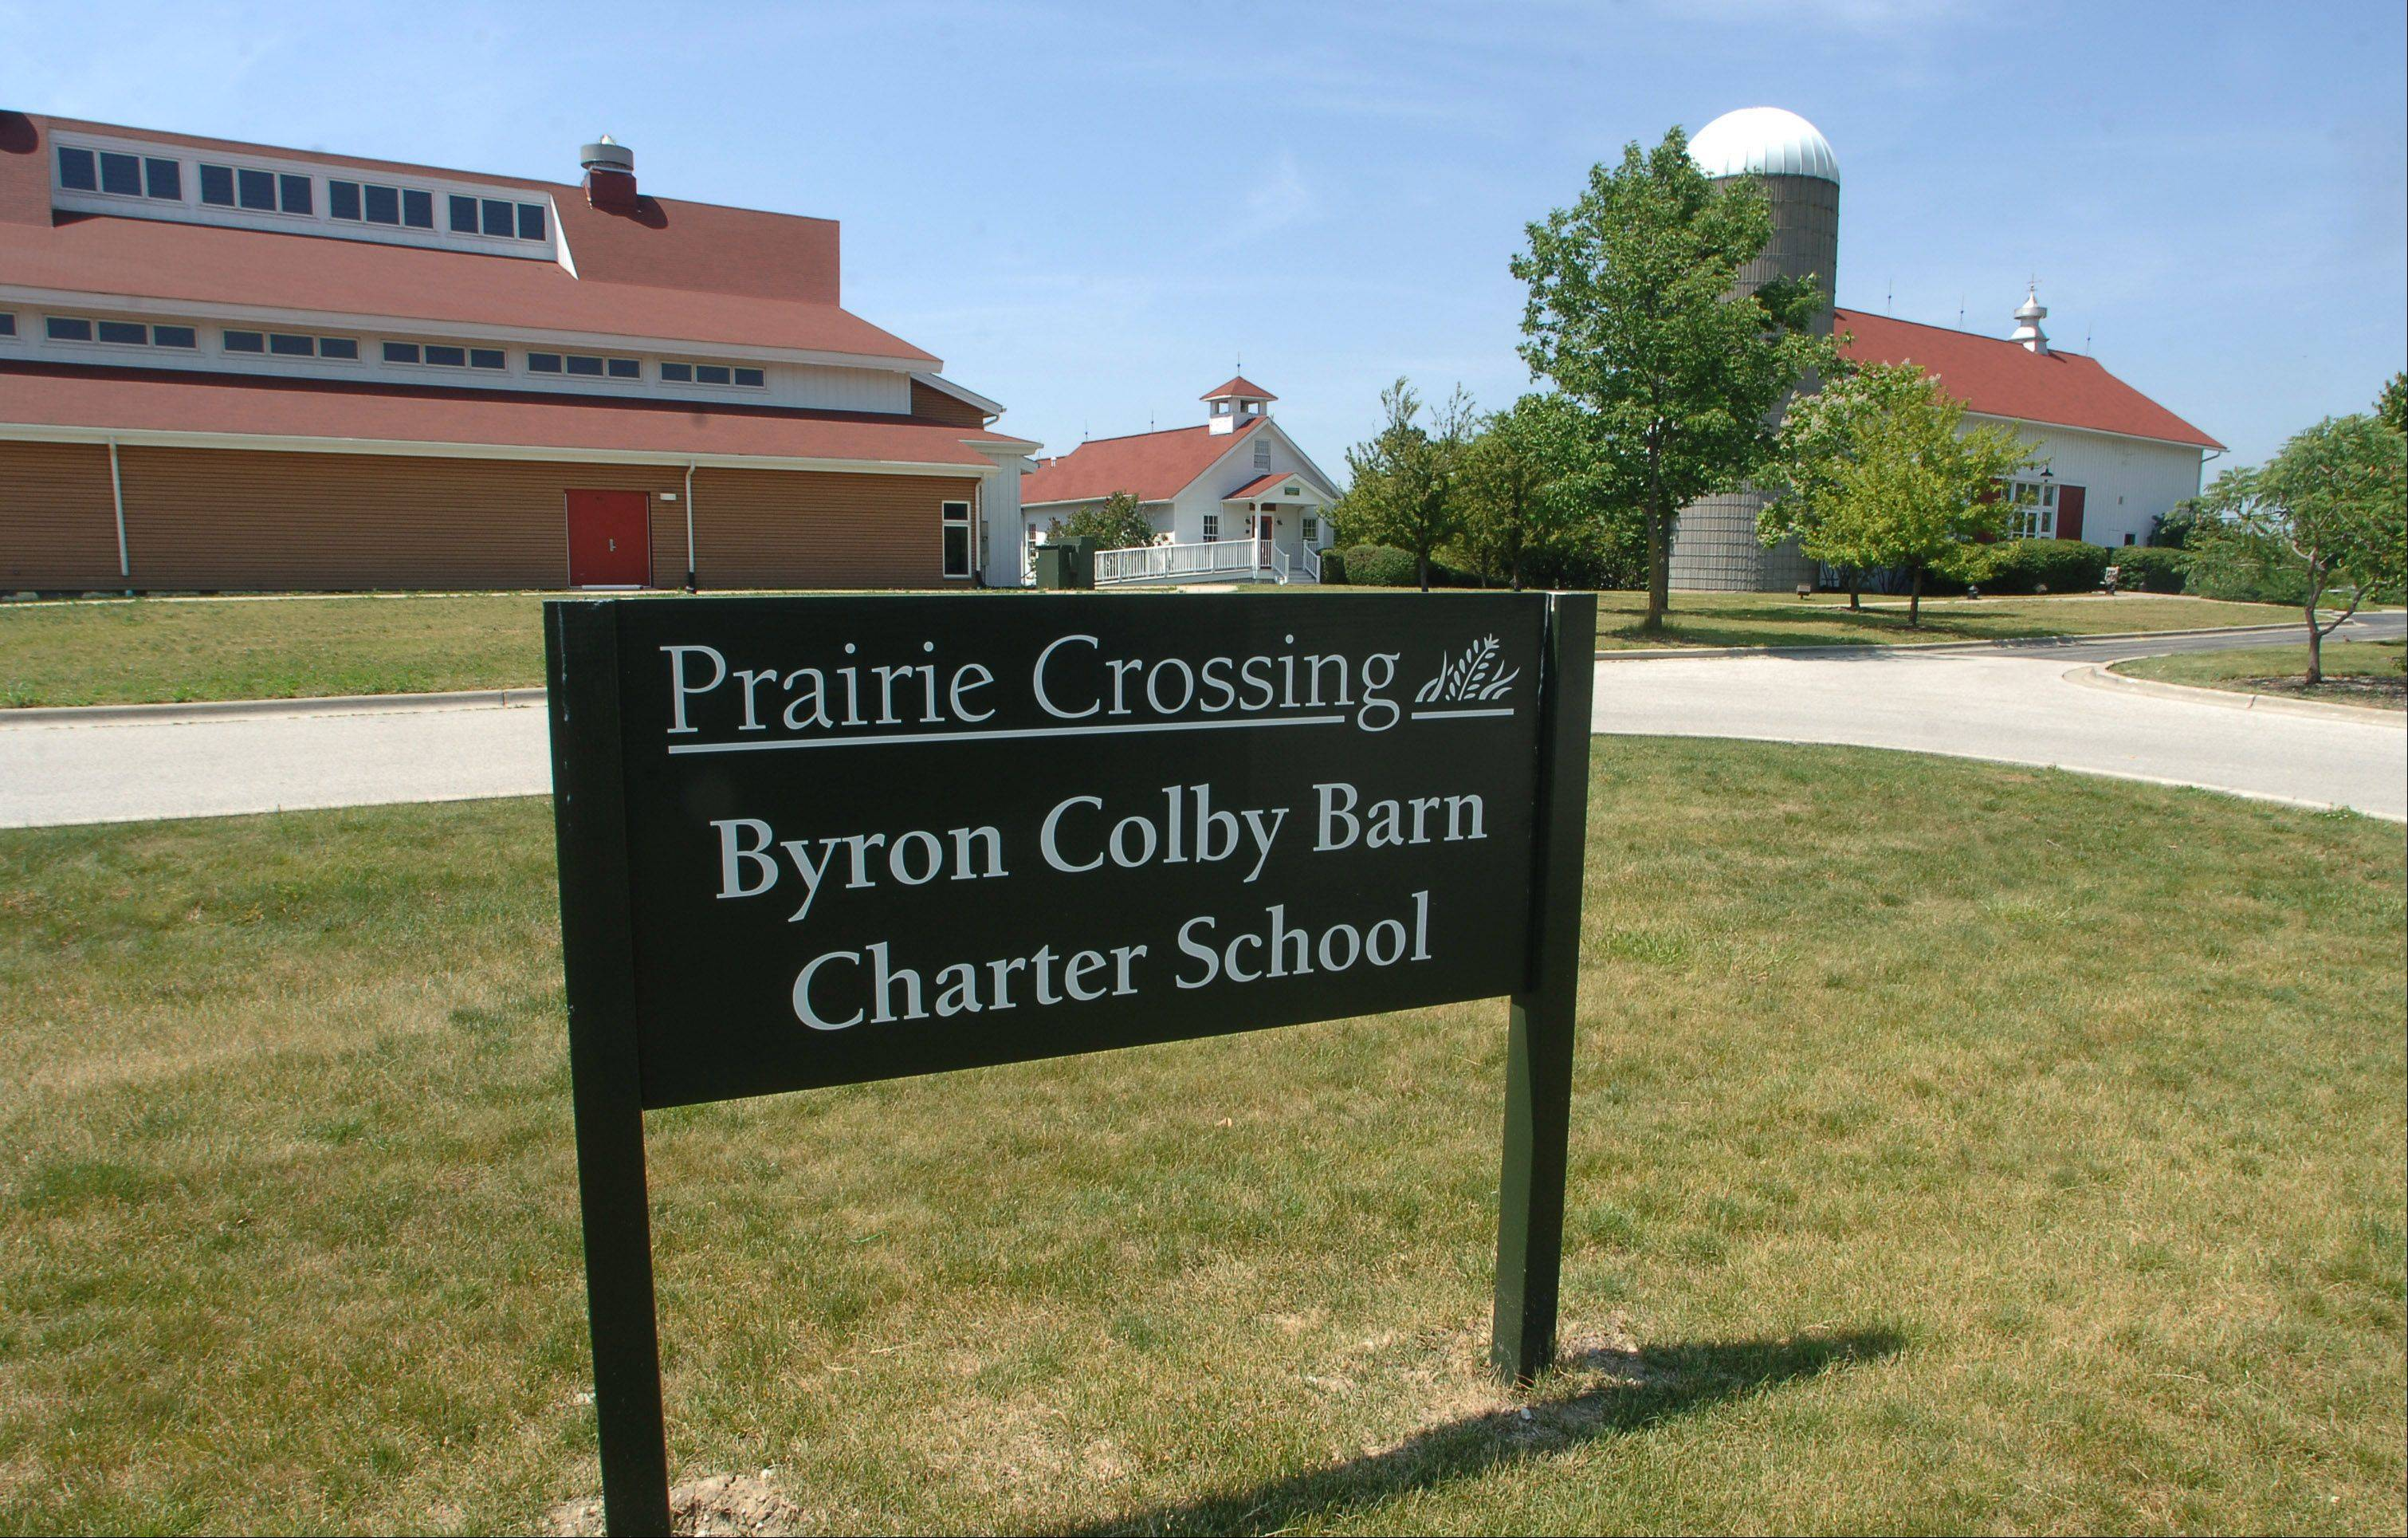 Prairie Crossing Charter School is at a subdivision by the same name in Grayslake.